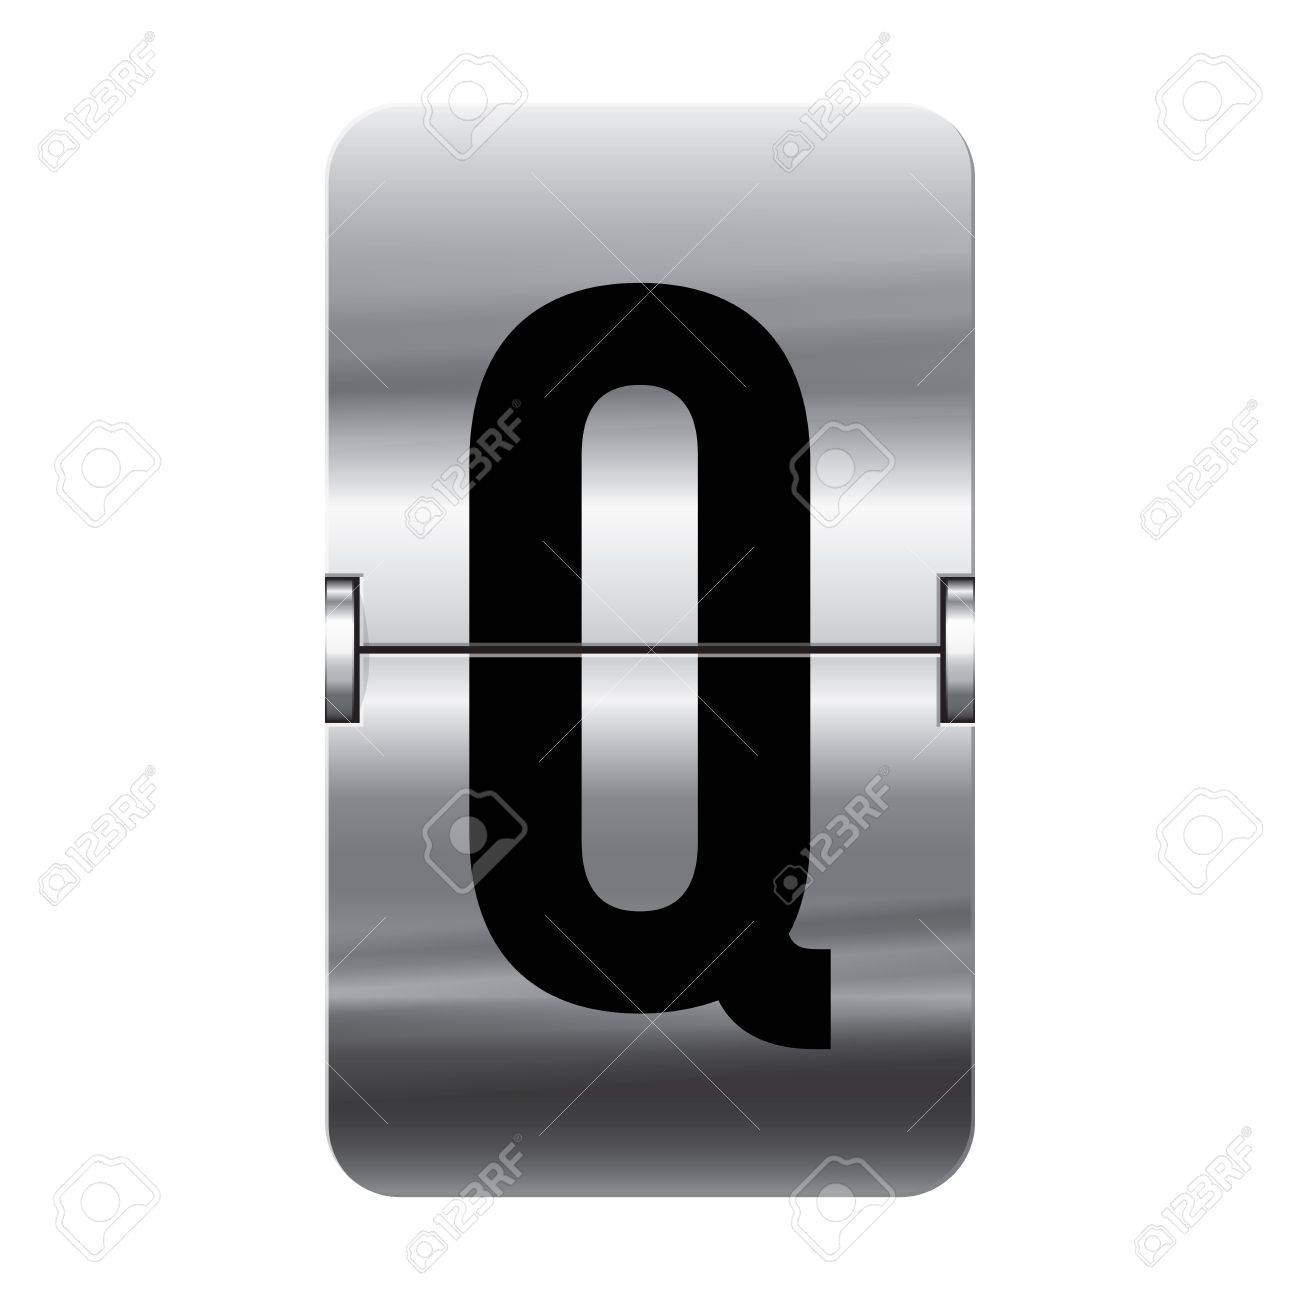 Silver flipboard letter q from a series of departure board letters. Stock Vector - 15799655